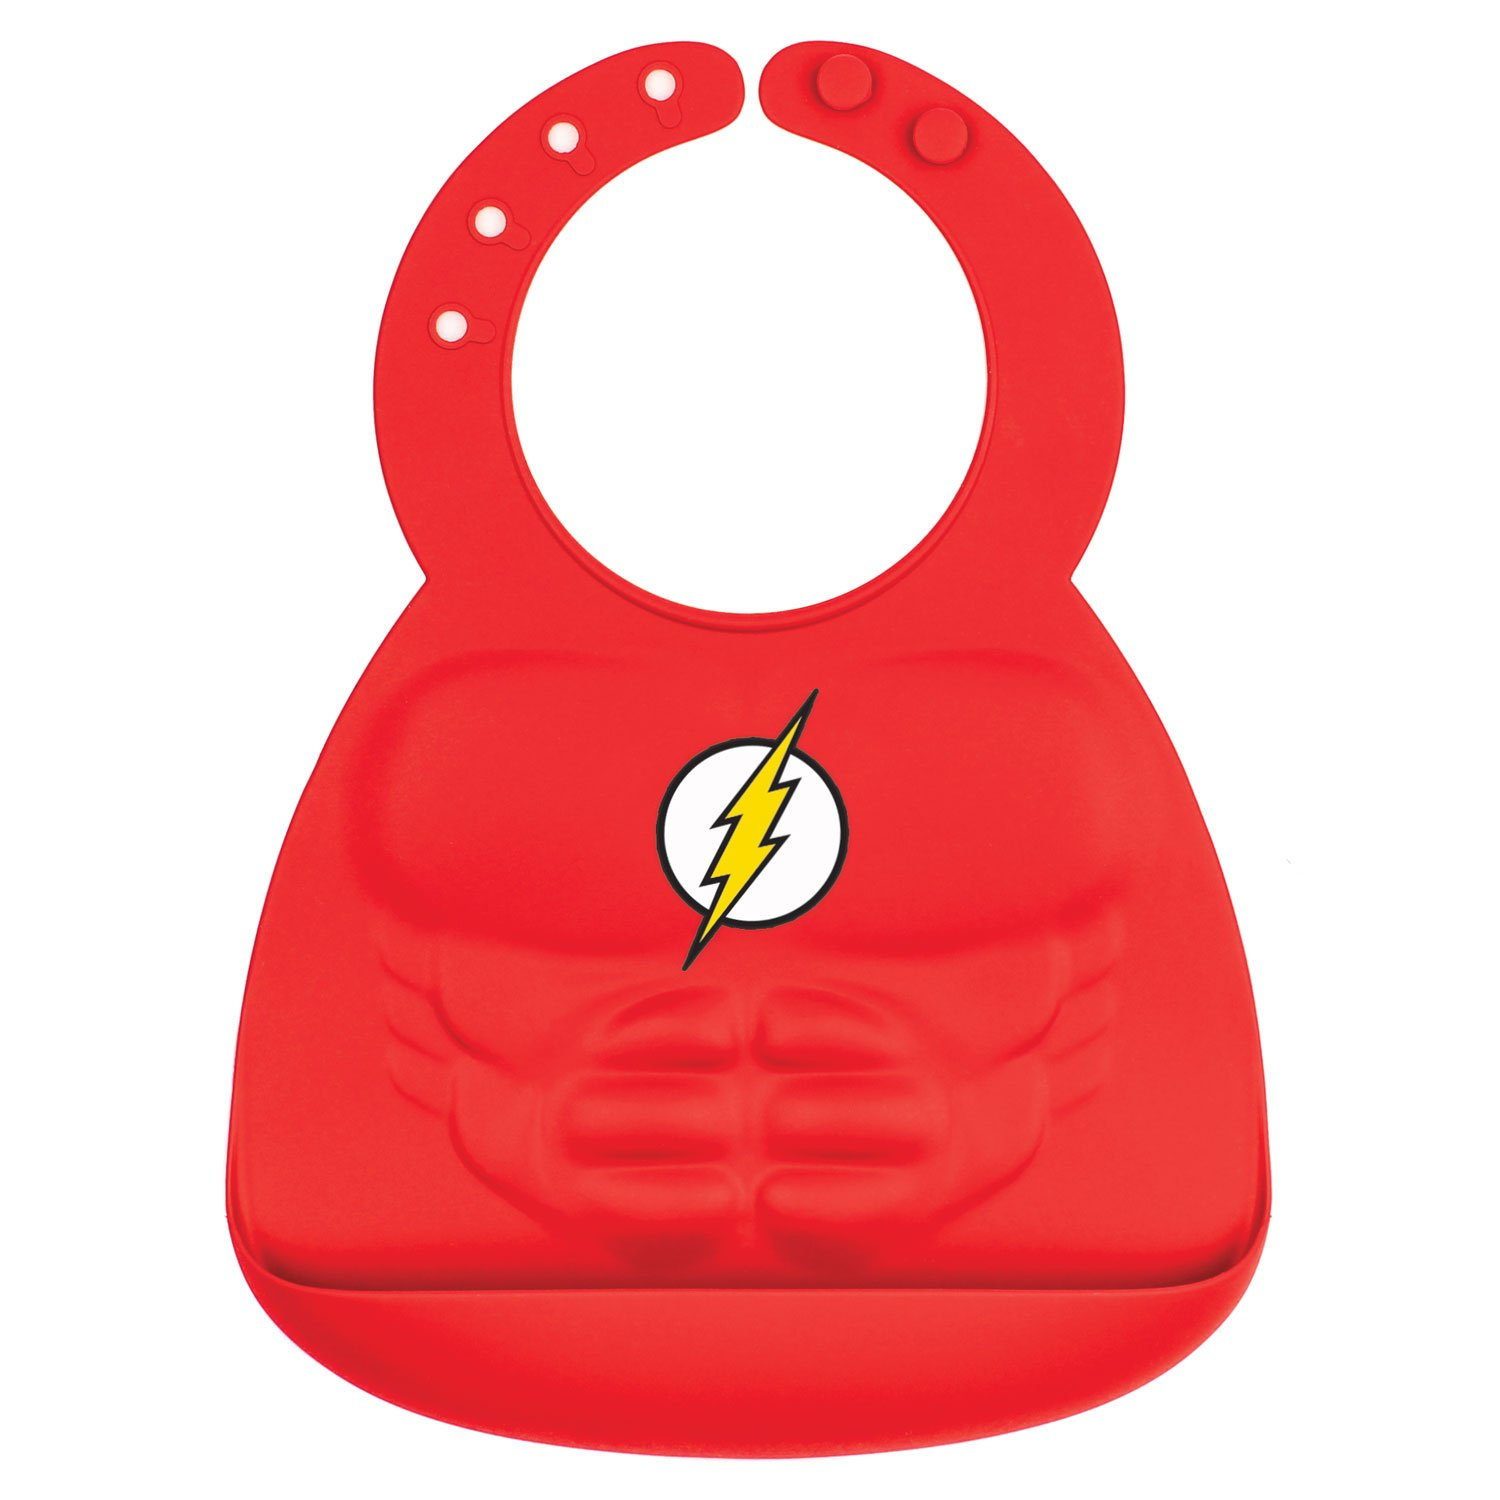 Bumkins DC Comics The Flash Silicone Bib, Baby Bib, Toddler Bib, Comfortable, Waterproof, Wipe Clean, Stain and Odor Resistant, 6-24 Months